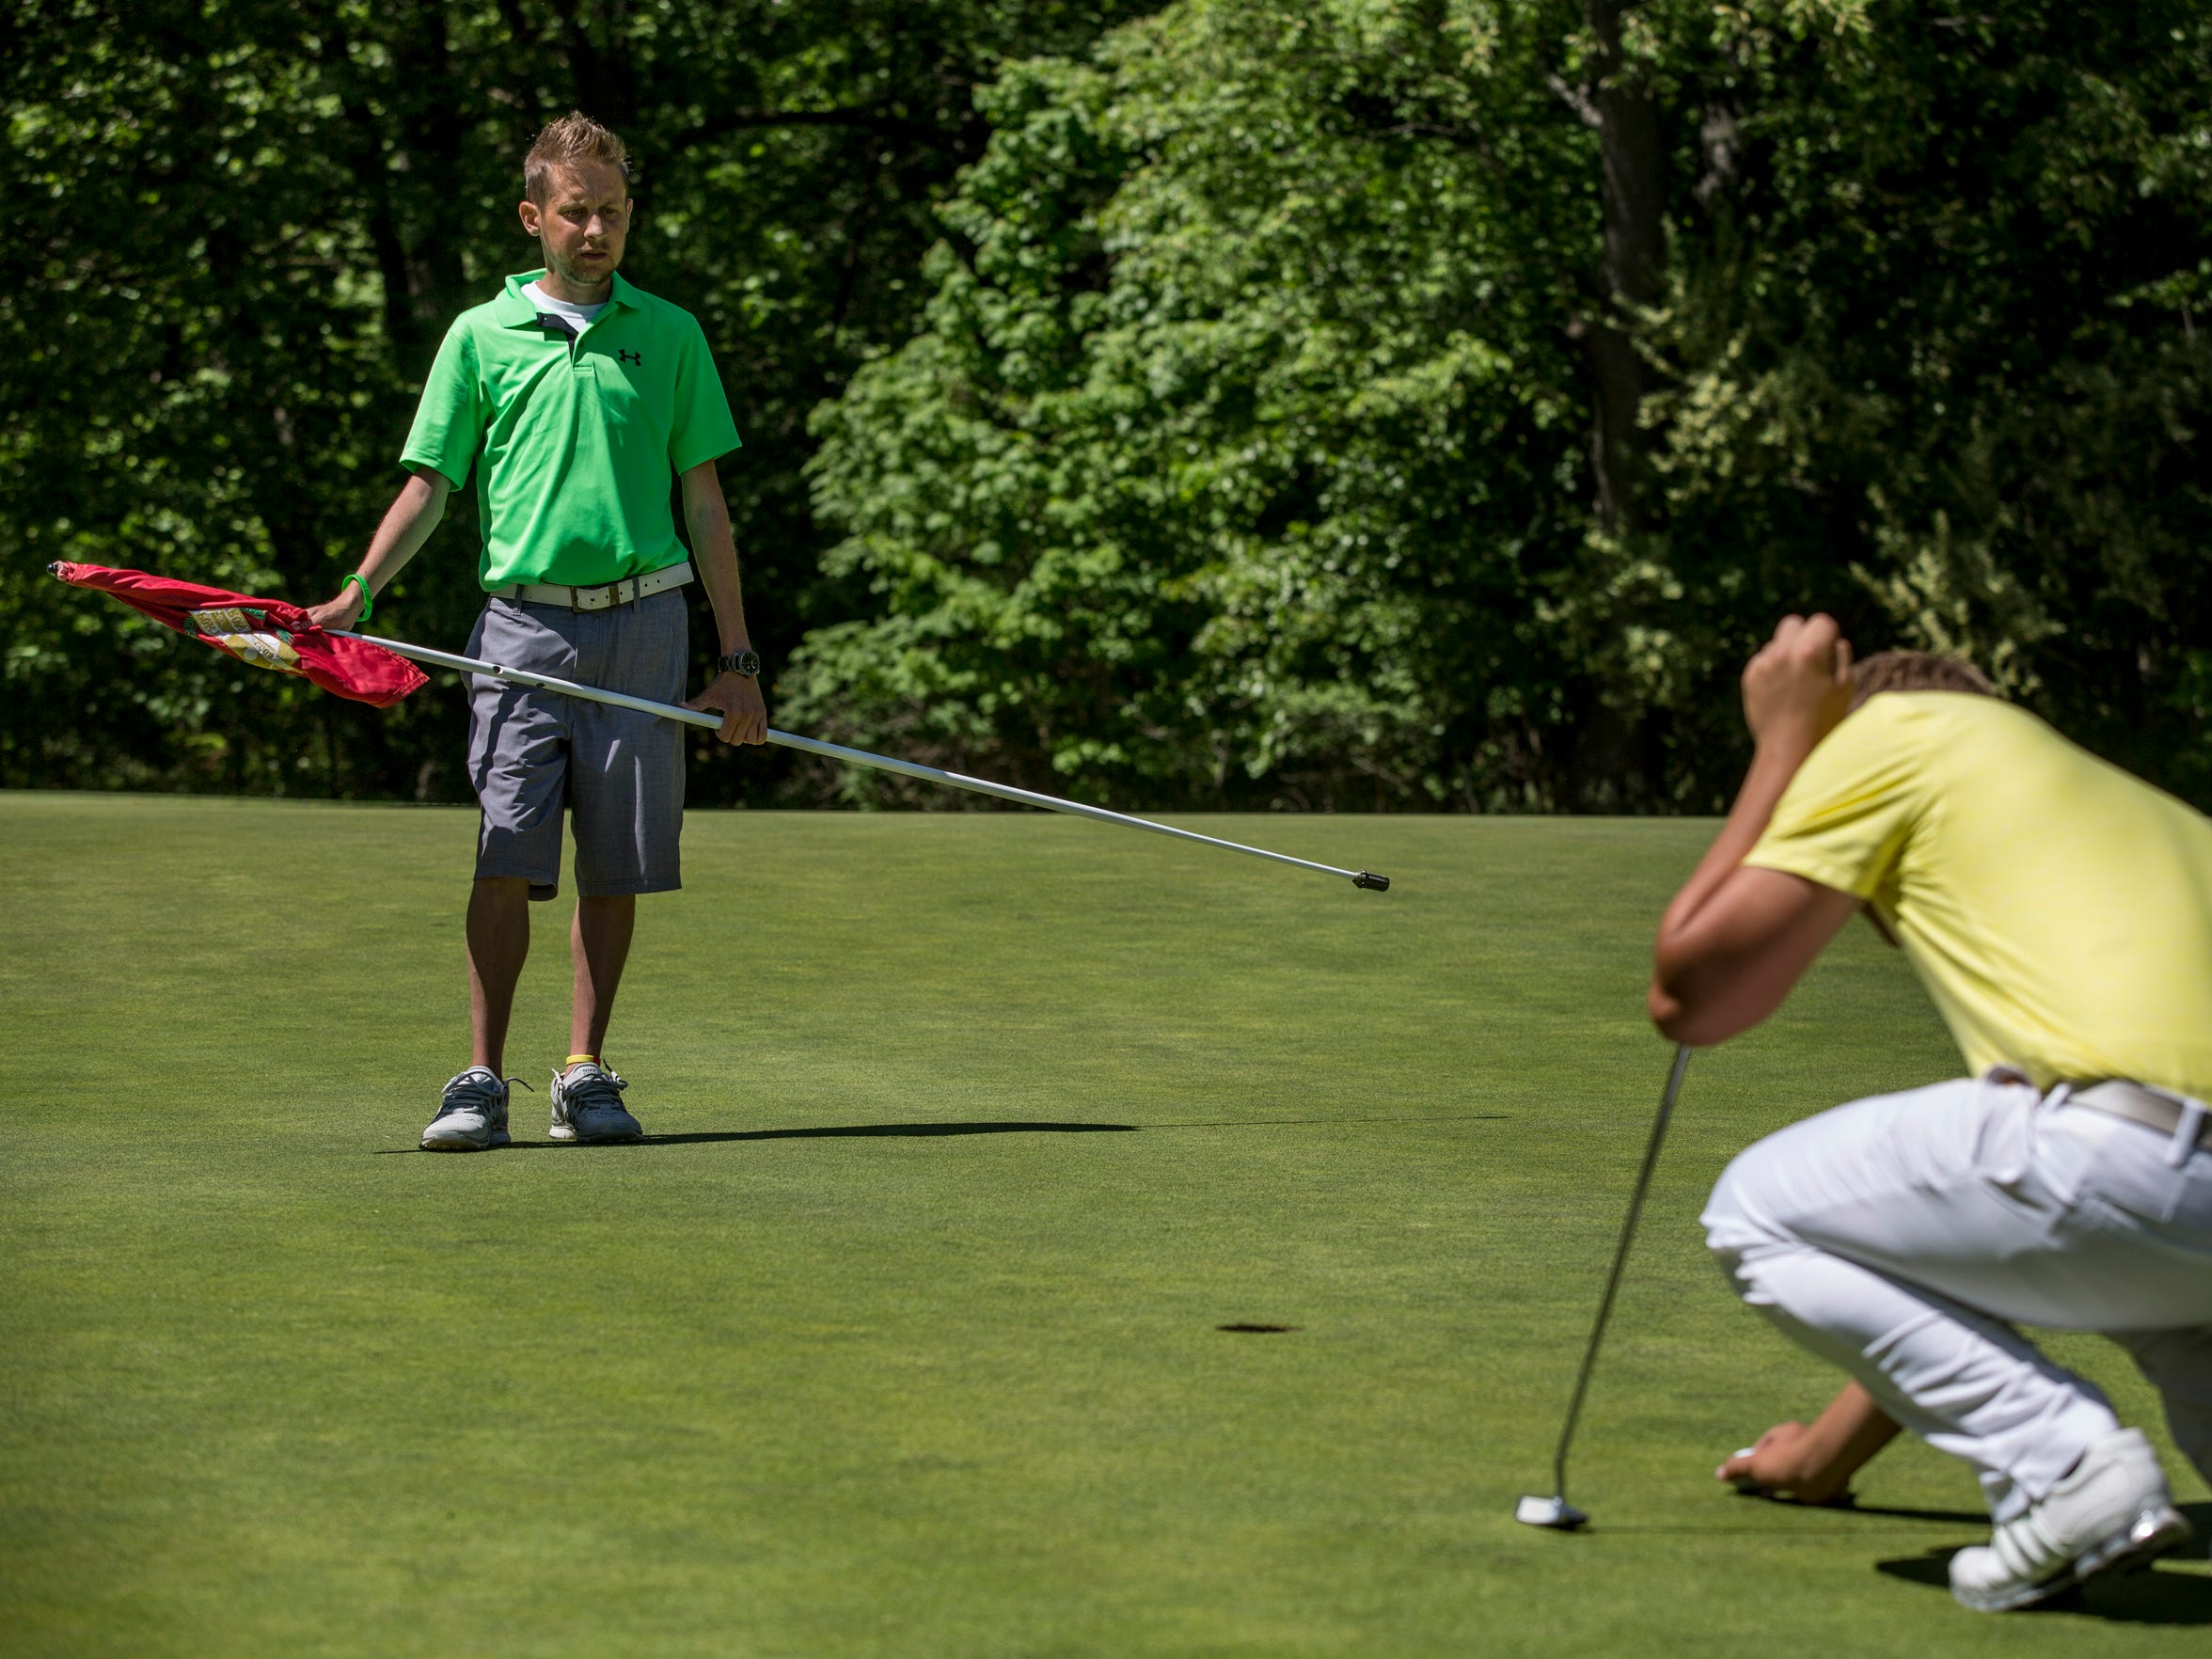 Kyle Bailey watches as his brother Nick Bailey lines up his putt Friday, June 3, 2016 at the Port Huron Golf Club.